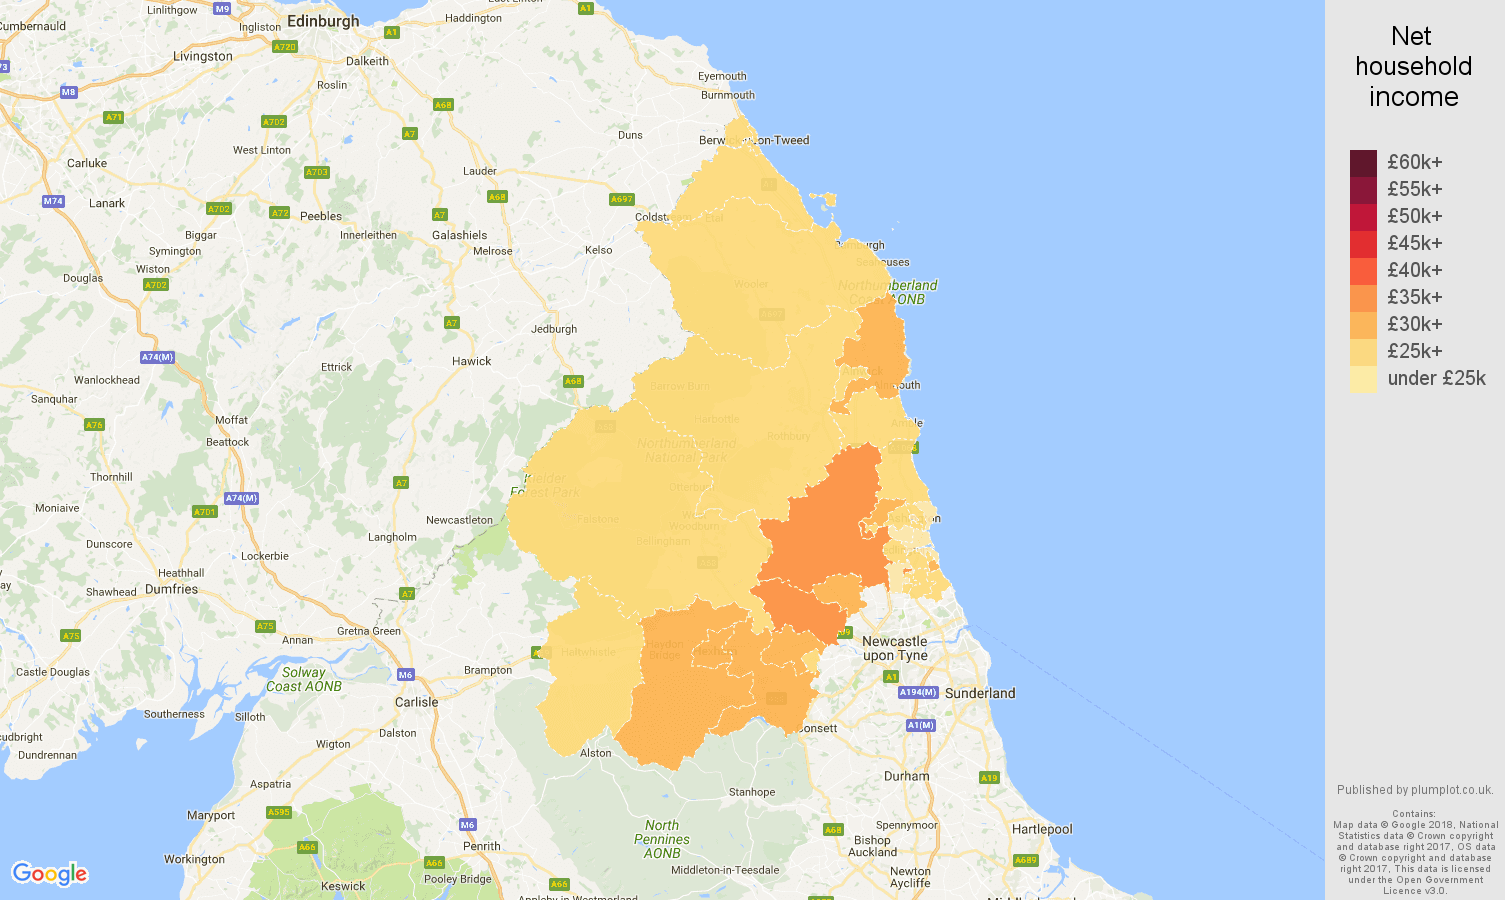 Northumberland net household income map